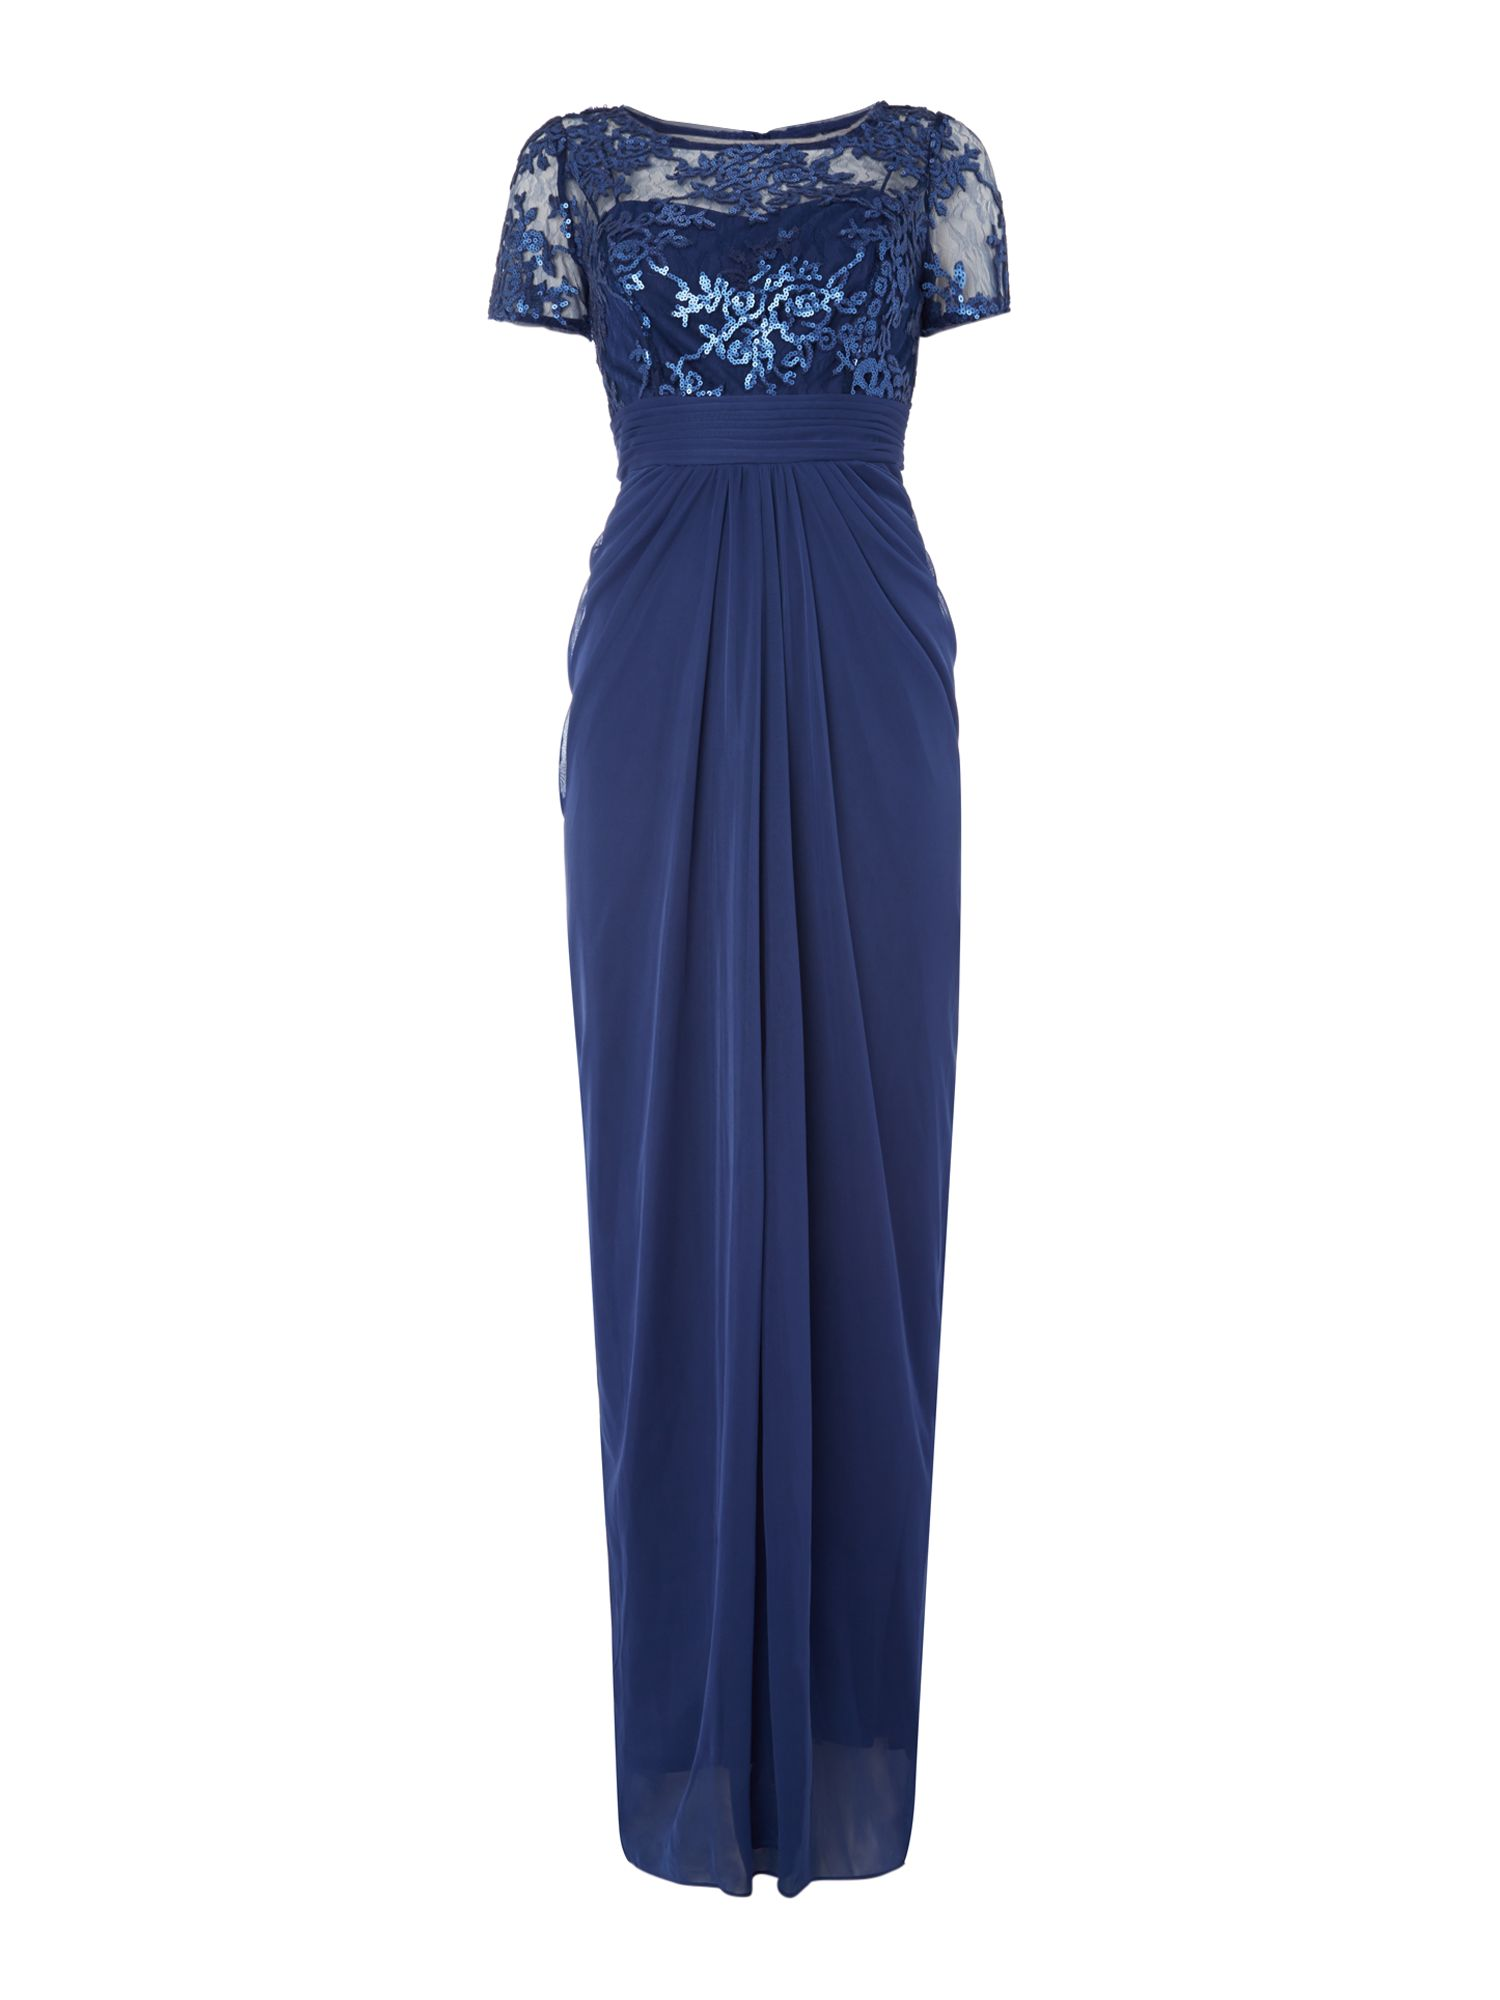 Adrianna Papell Short sleeve gown with floral sequin top $85.00 AT vintagedancer.com